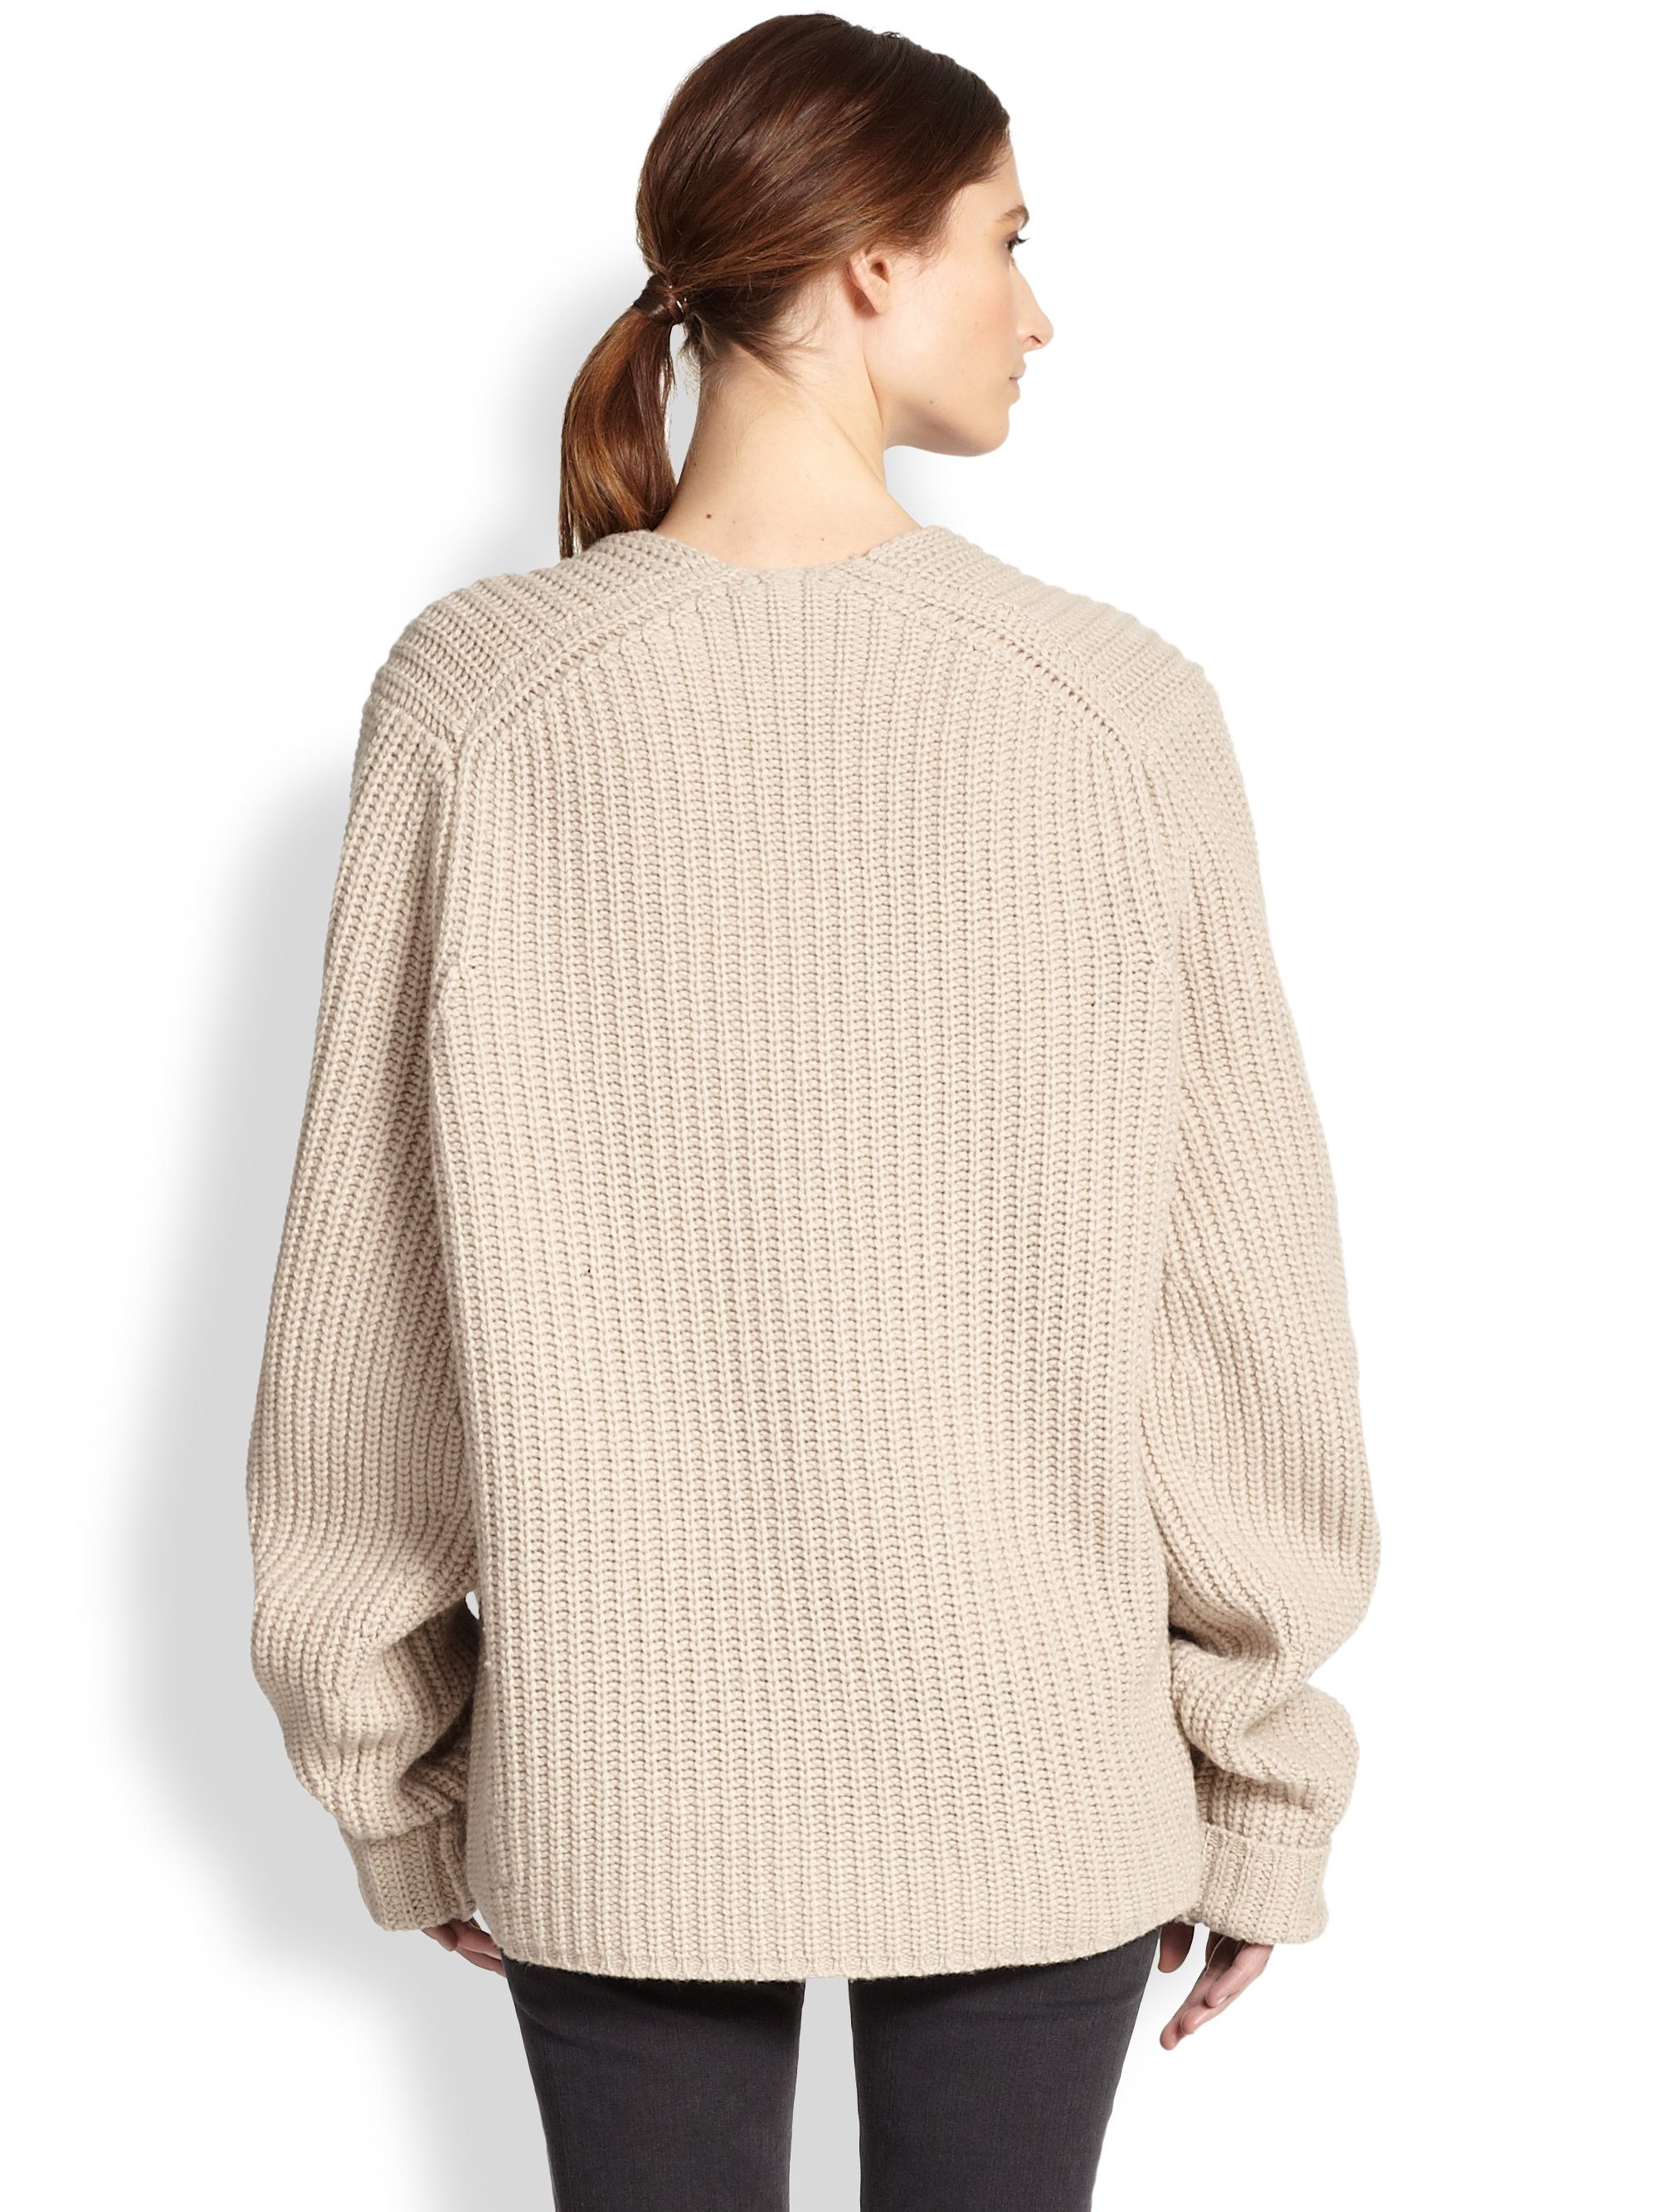 Acne studios Oversized Ribbed Wool Sweater in Natural | Lyst